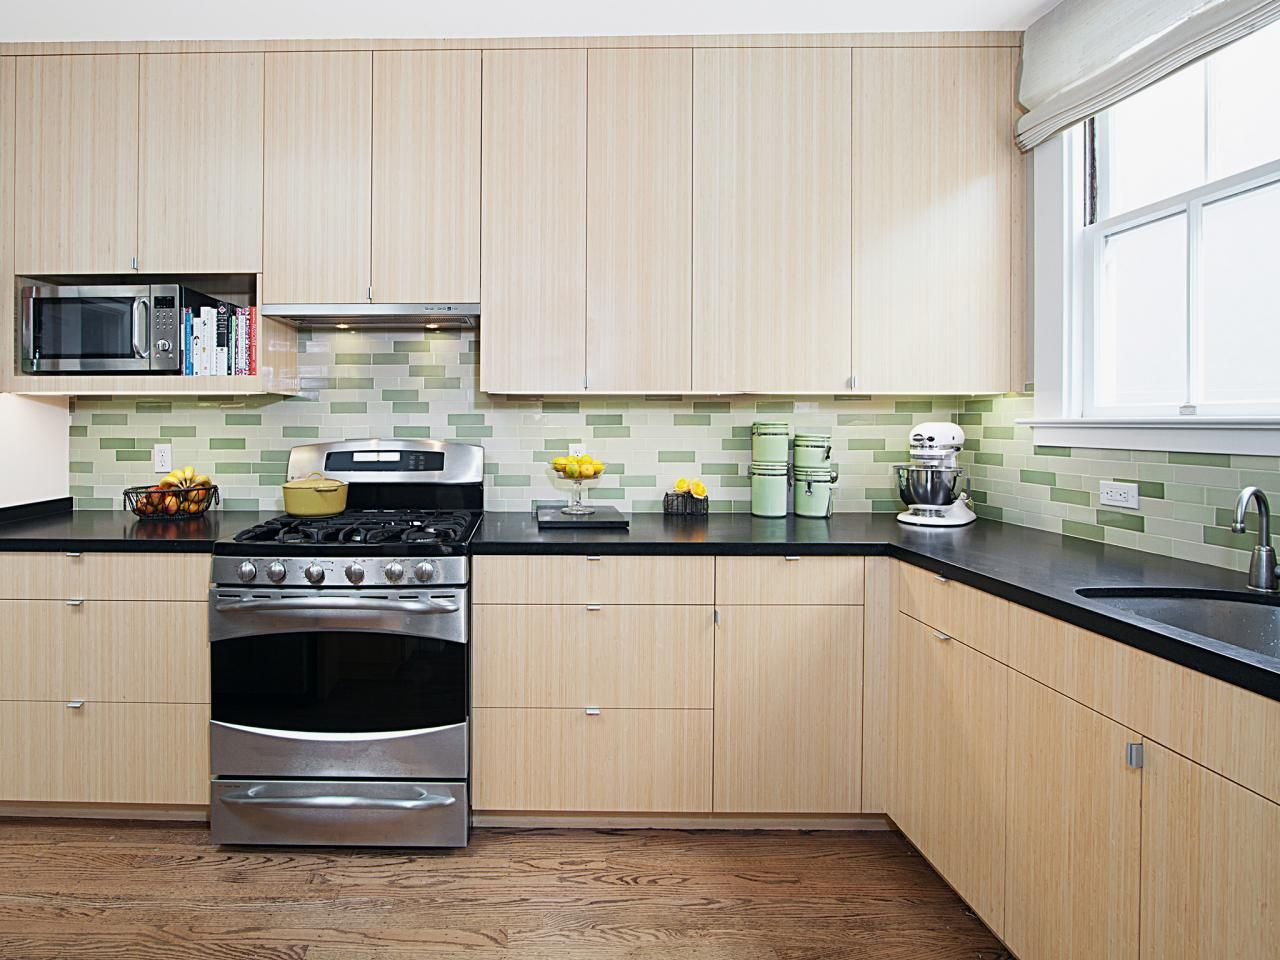 Laminate Kitchen Cabinets Pictures Options Tips Ideas Contemporary Kitchen Cabinets Laminate Kitchen Kitchen Cabinet Styles